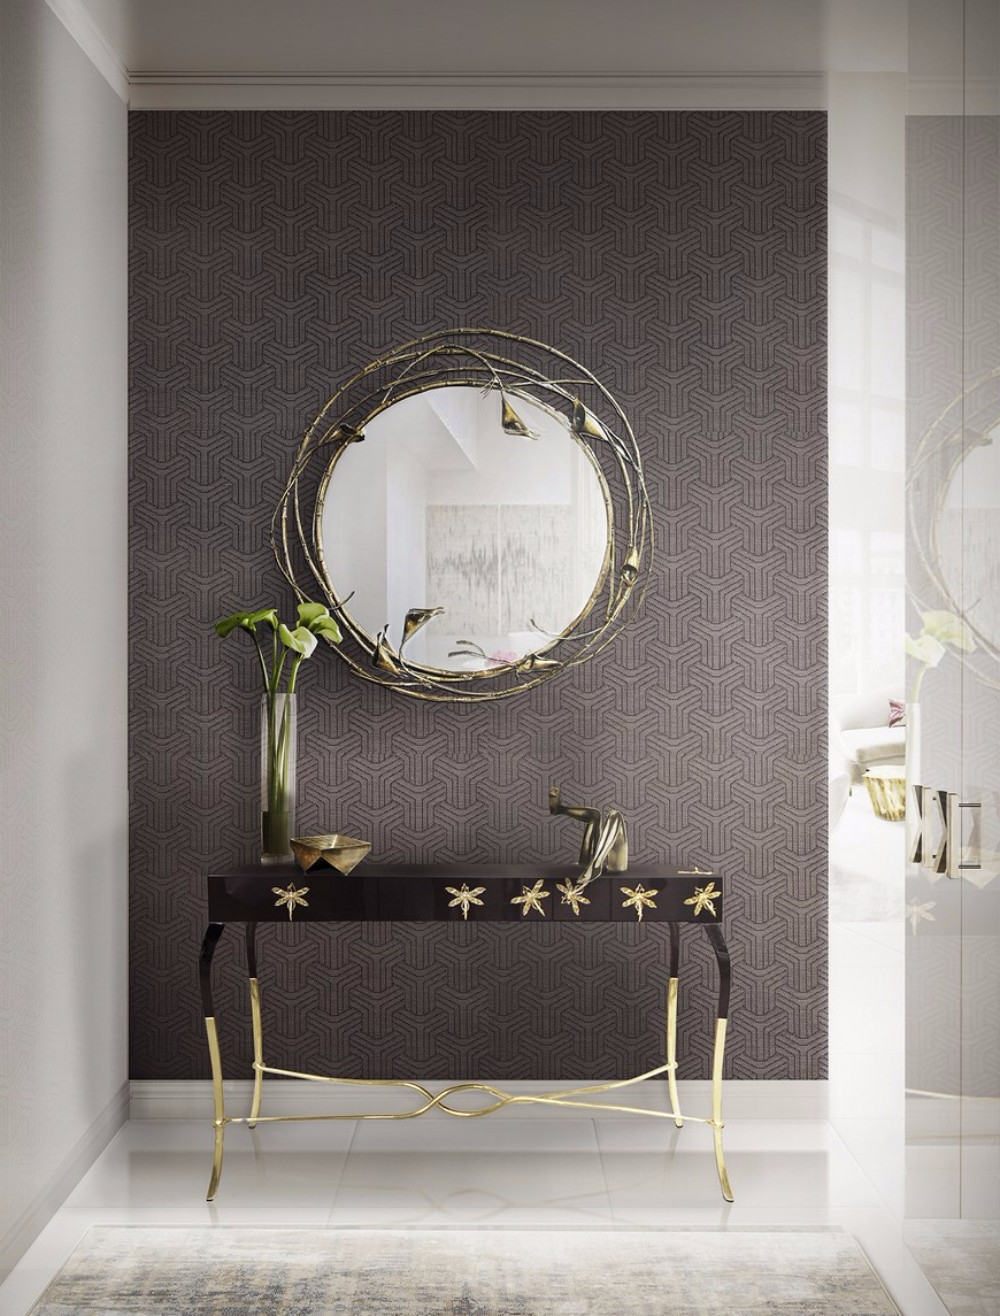 20 Exquisite Wall Mirror Designs For Your Living Room Regarding Trendy Mirrored Wall Mirrors (Gallery 16 of 20)